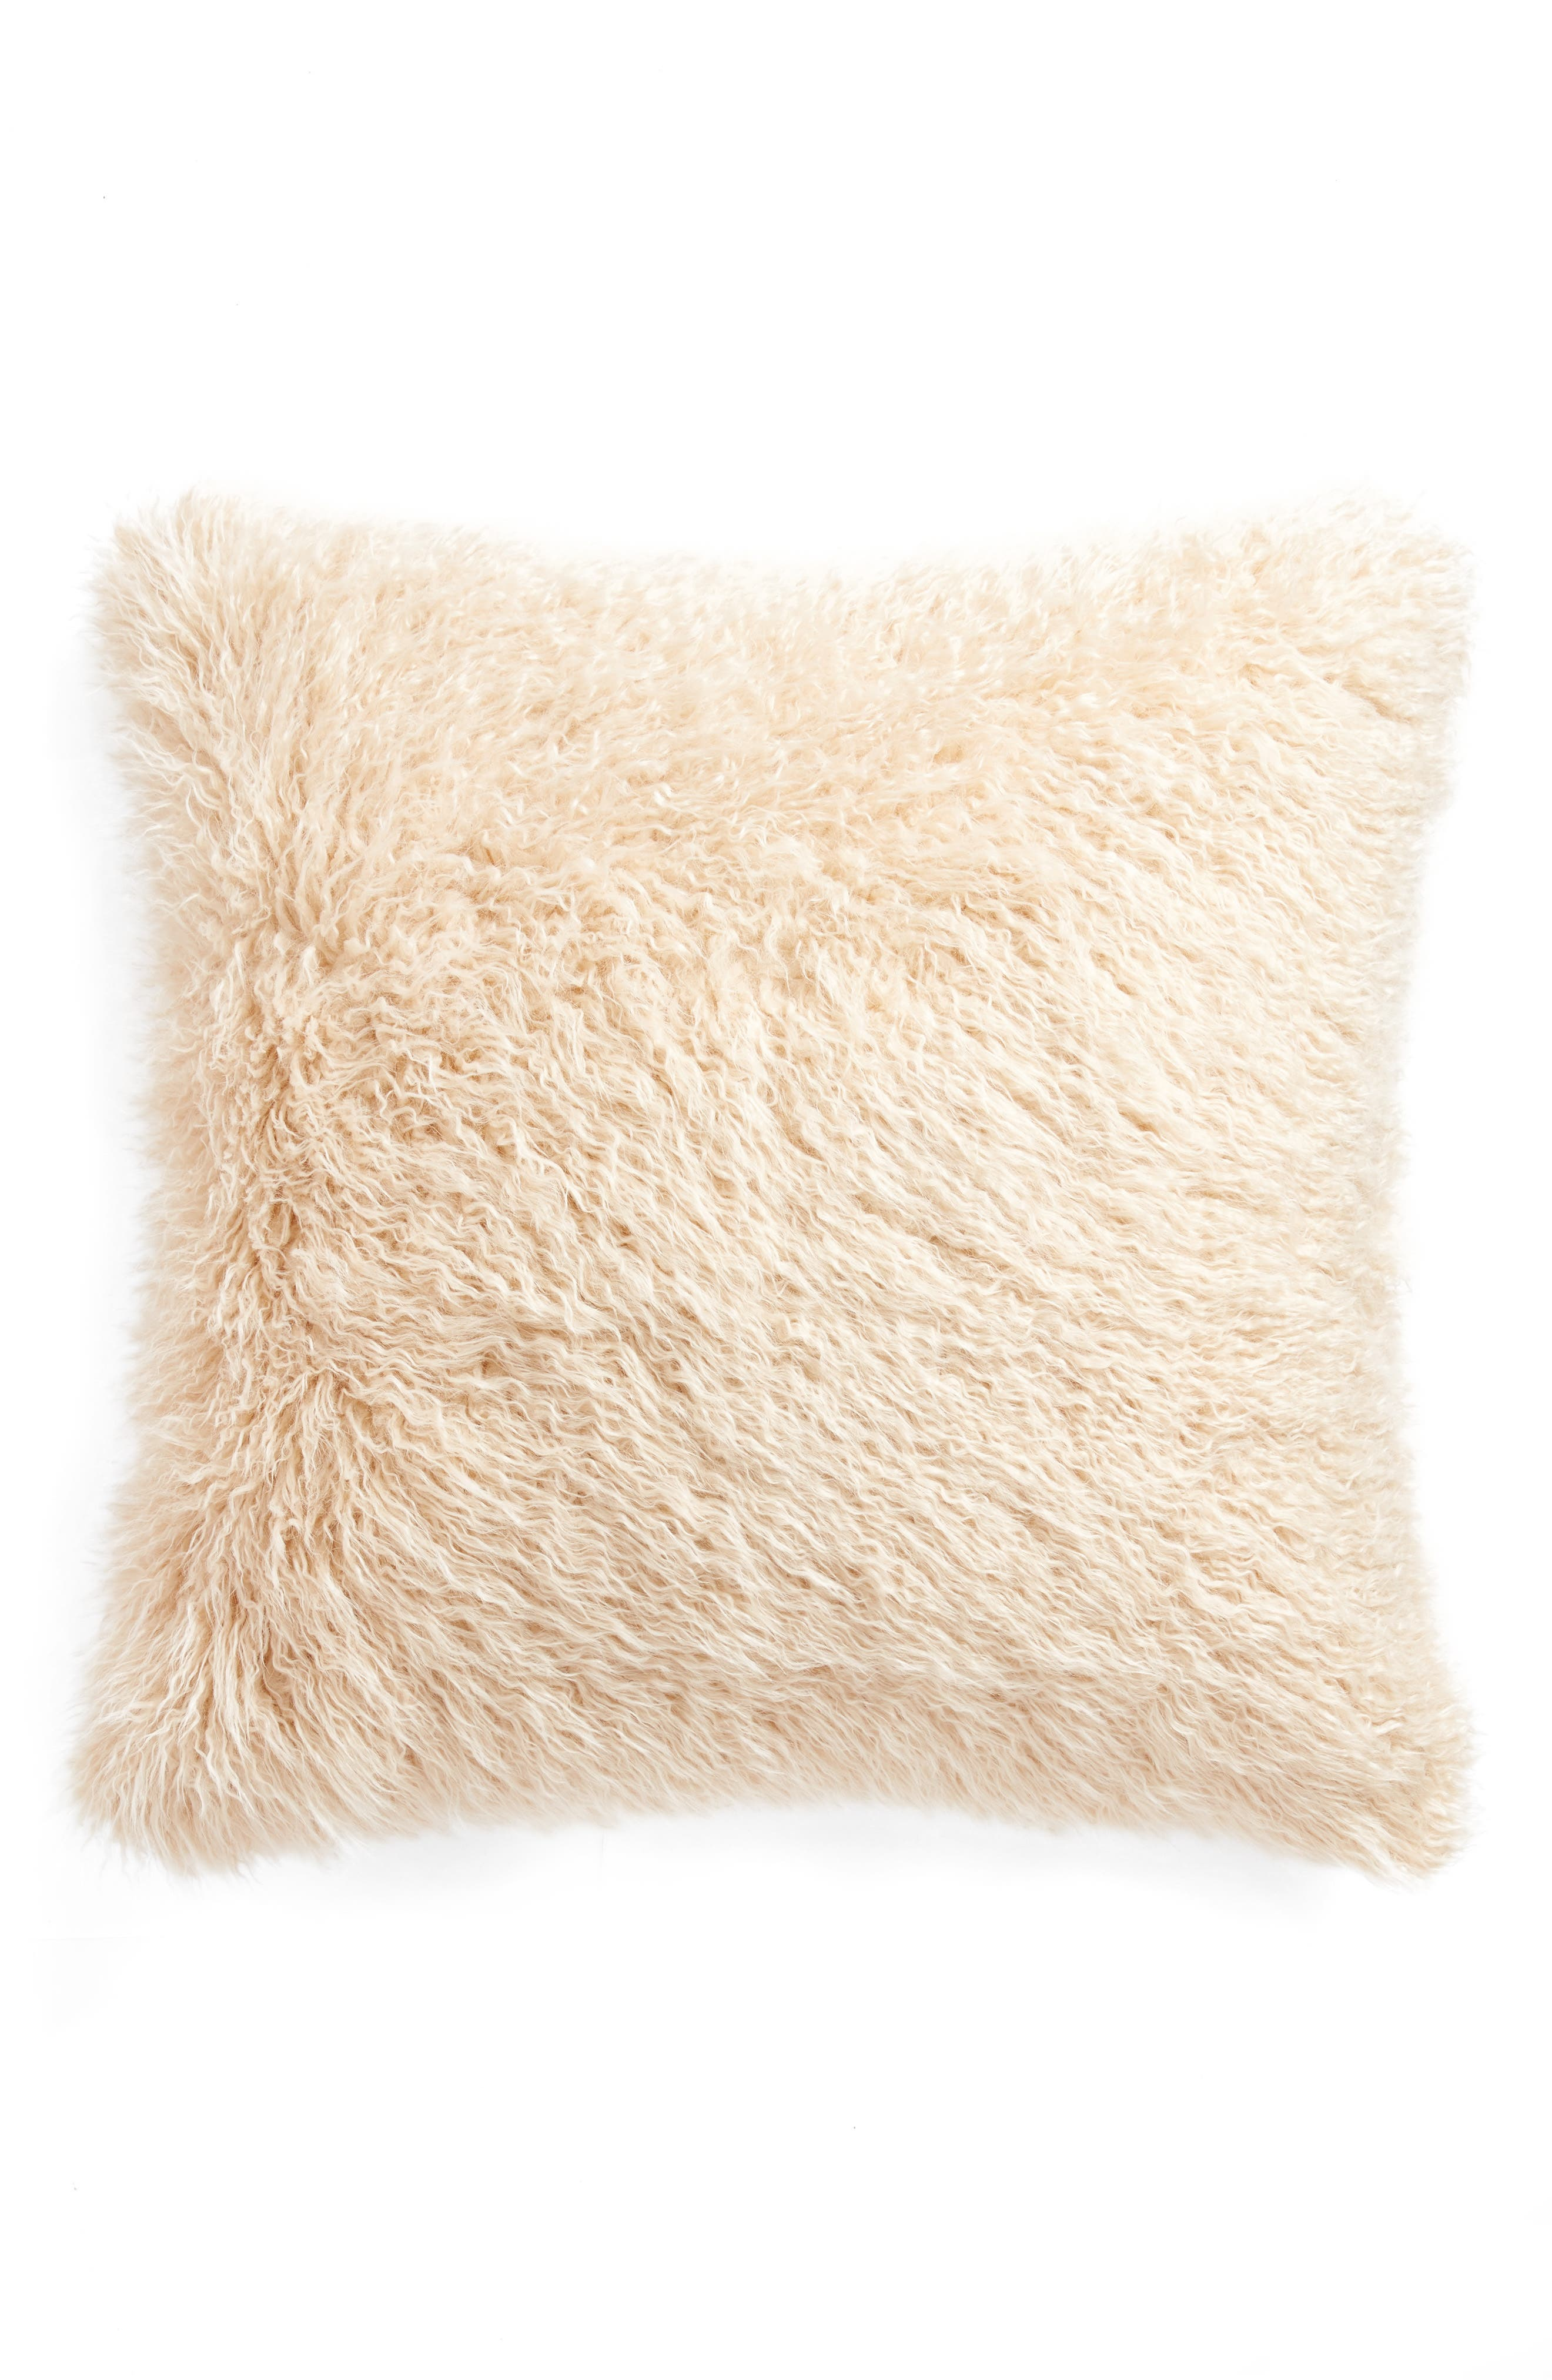 TREASURE & BOND, Curly Faux Fur Pillow, Main thumbnail 1, color, BEIGE BEACH